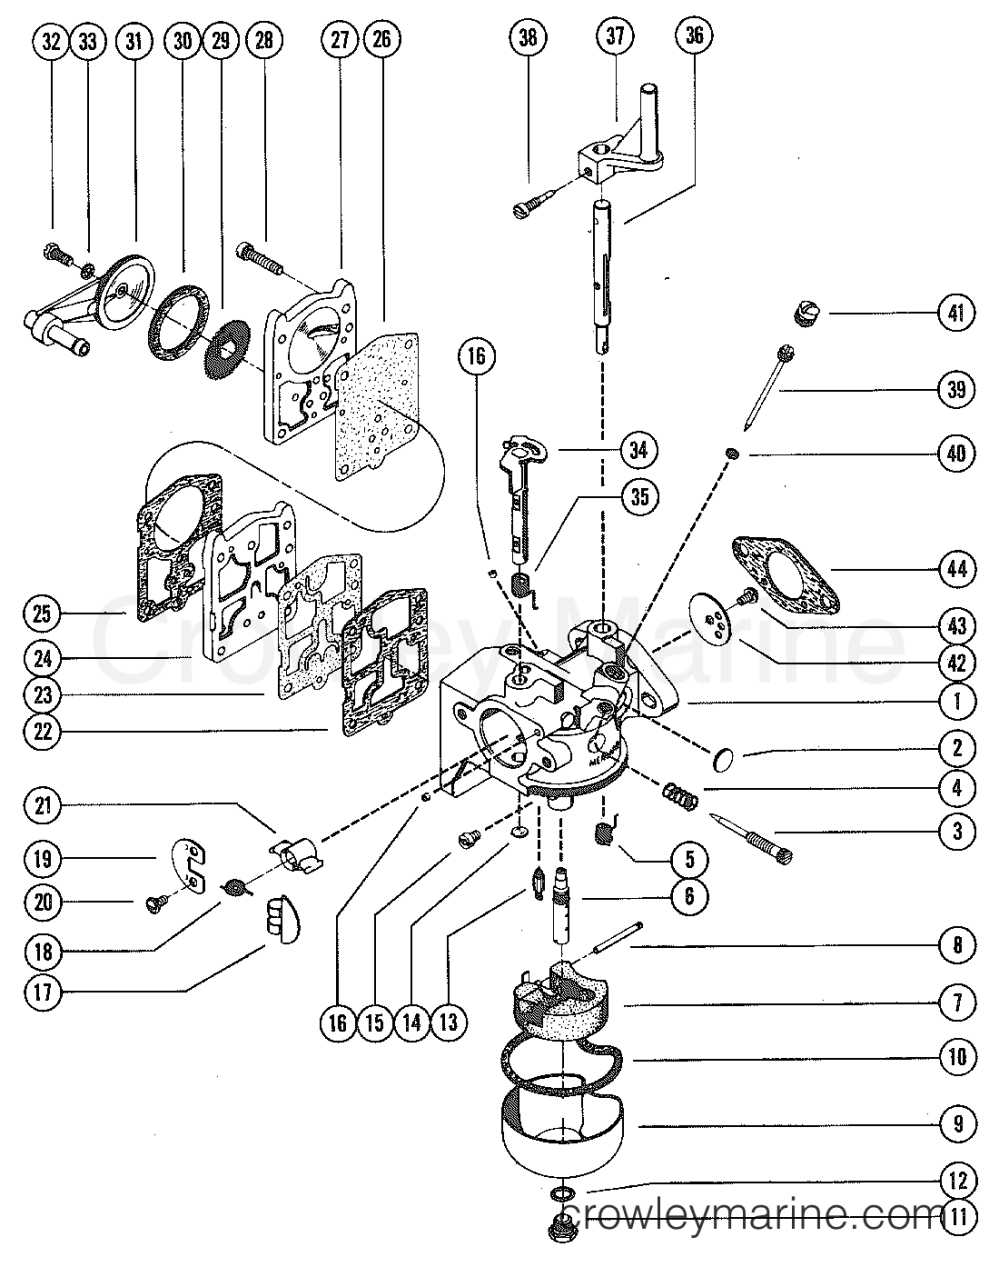 medium resolution of mercury carburetor diagram wiring diagram featured carburetor assembly complete 1975 mercury outboard 9 8 1110205